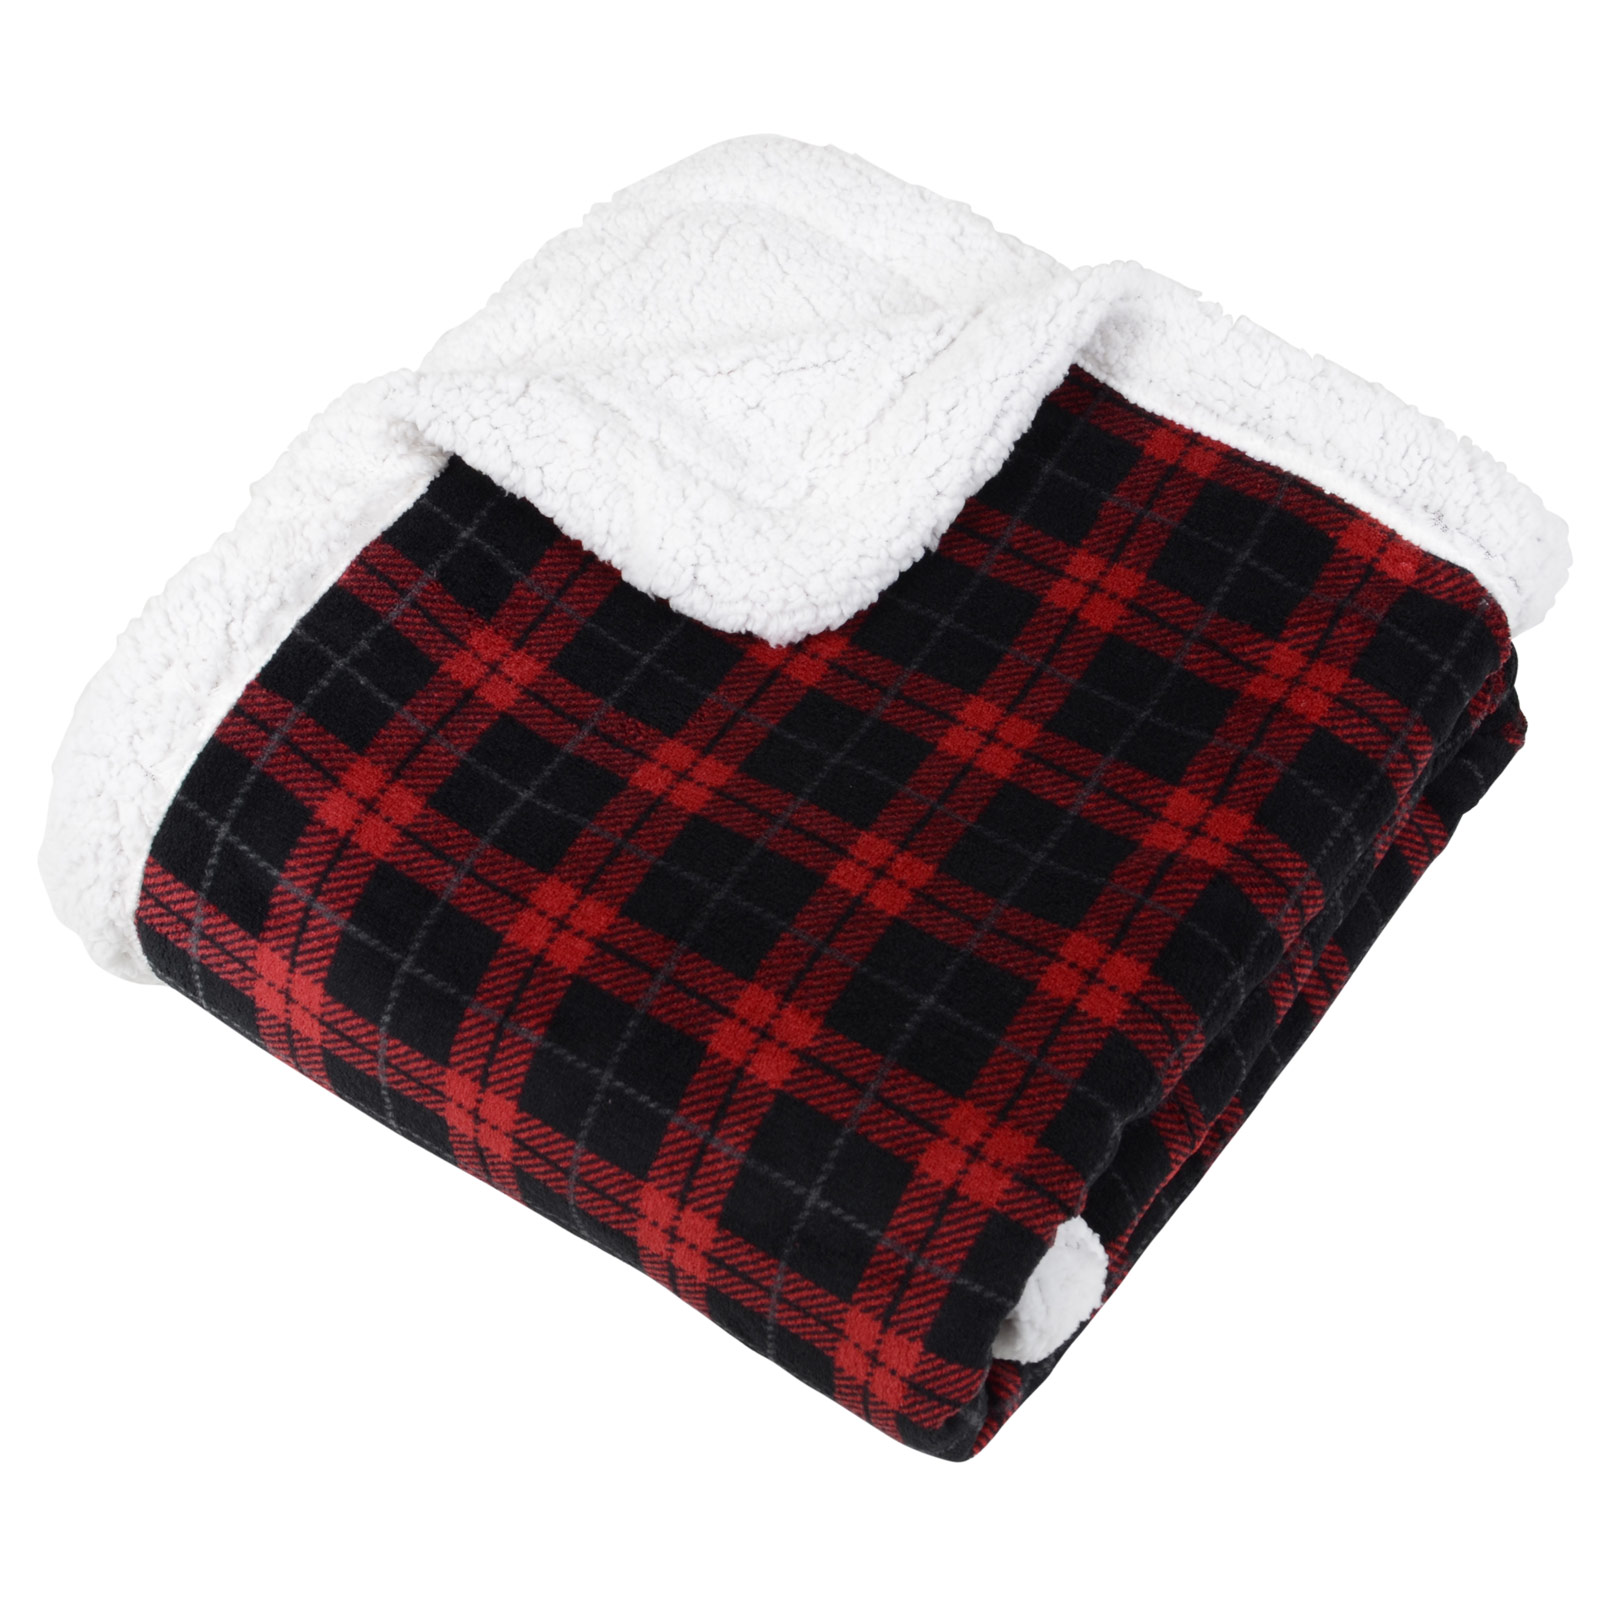 ebay large chair covers for thanksgiving tartan check warm fleece blanket soft sherpa luxury home sofa bed throw |